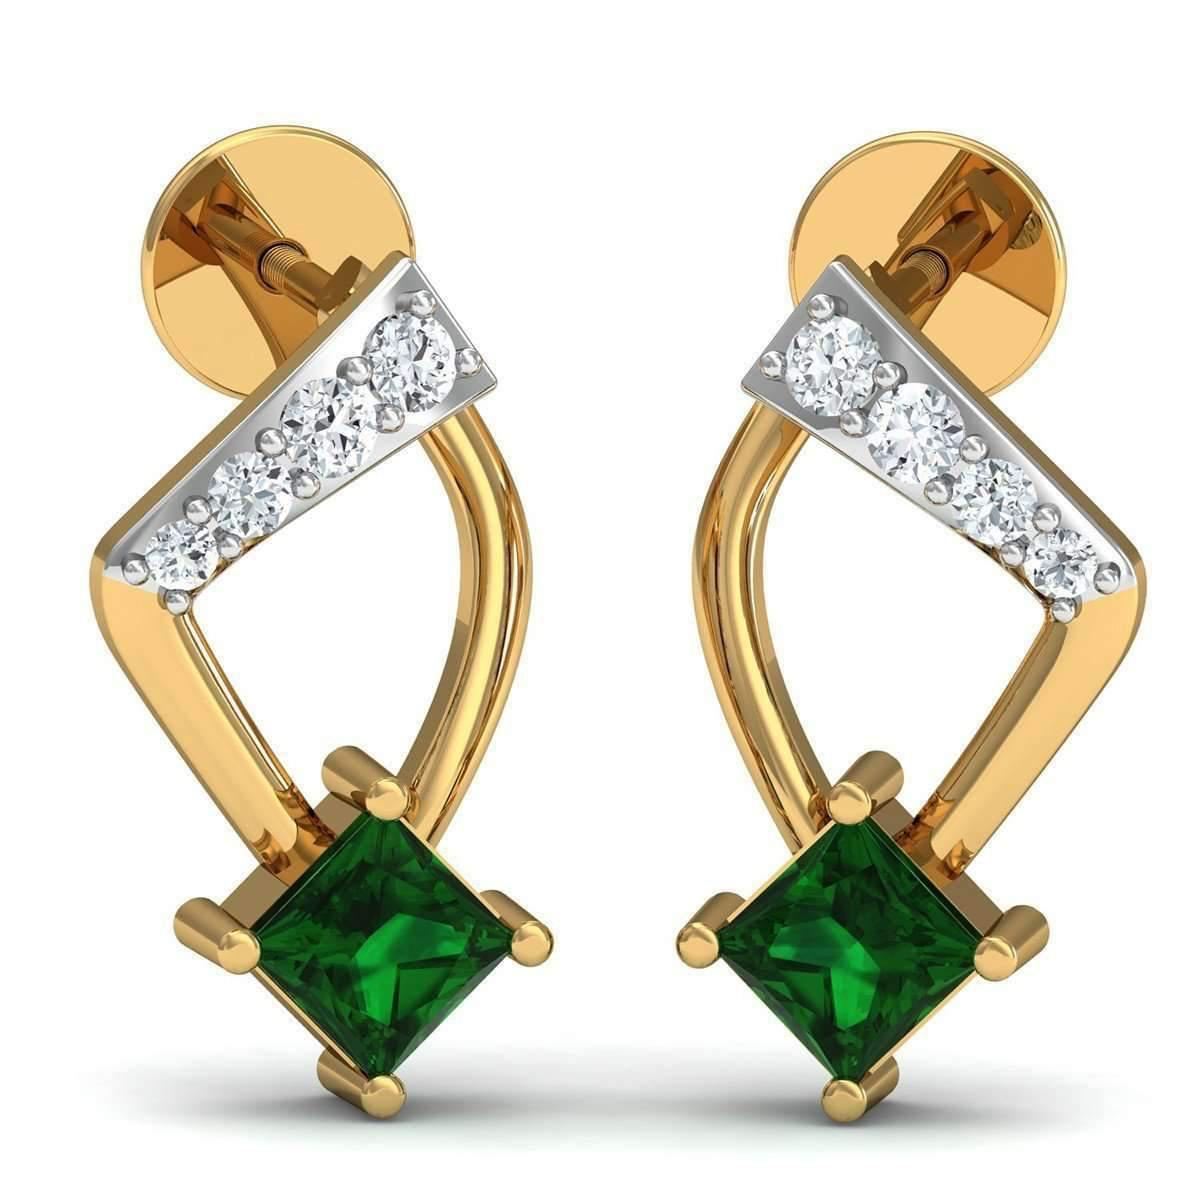 Diamoire Jewels 18kt Yellow Gold 0.09ct Pave Diamond Infinity Earrings With Emerald 0PET4r